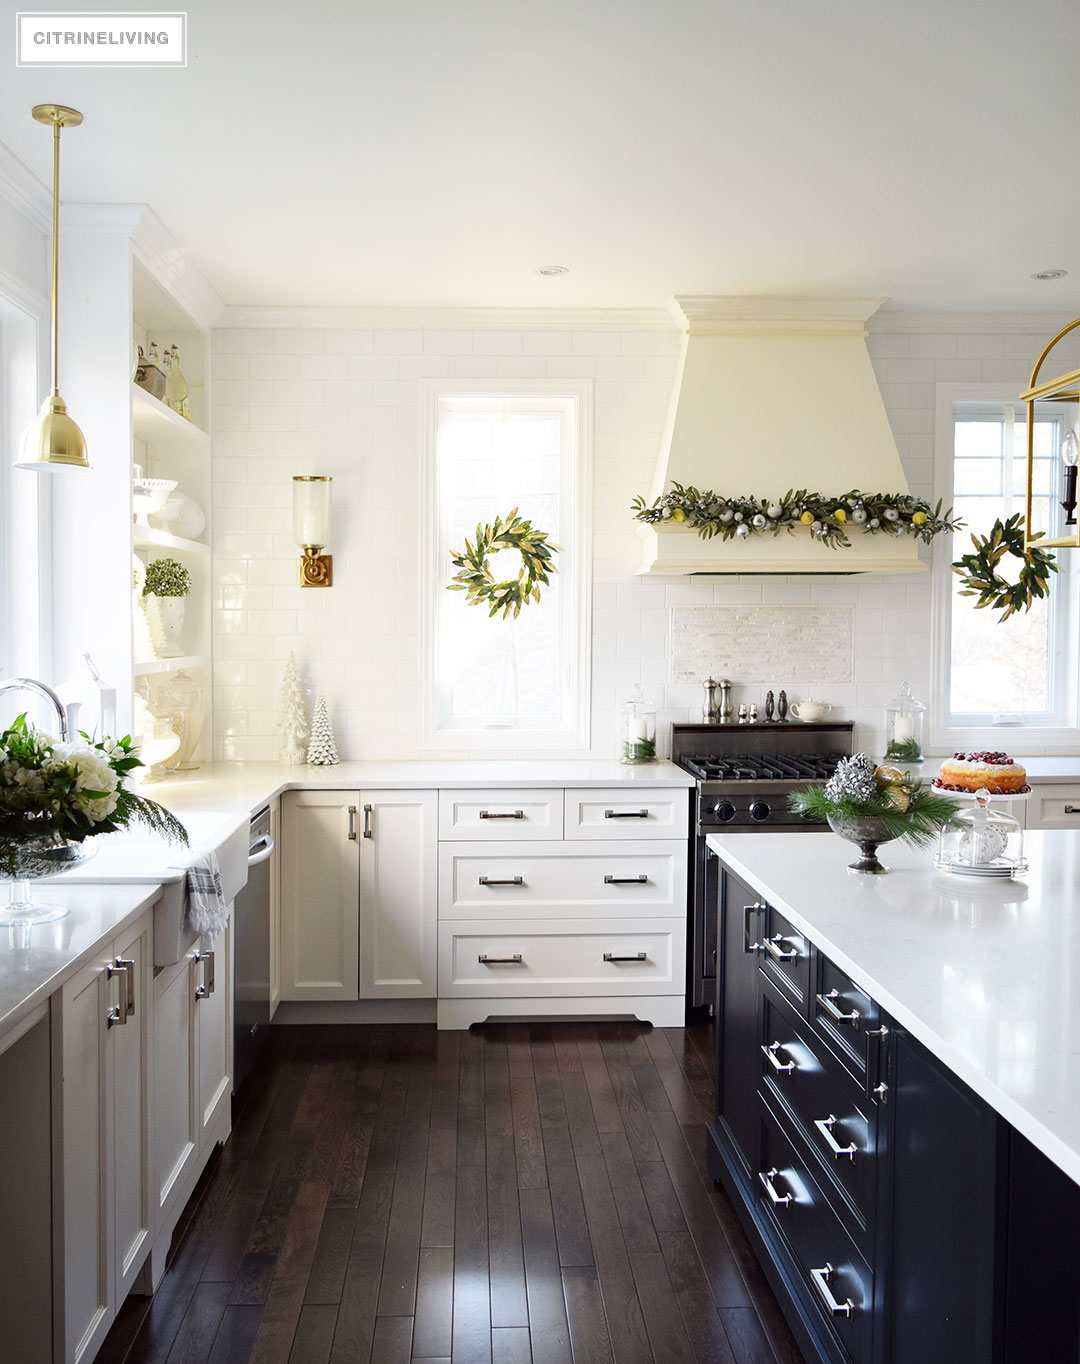 kitchen-christmas-magnolia-wreath-garland3